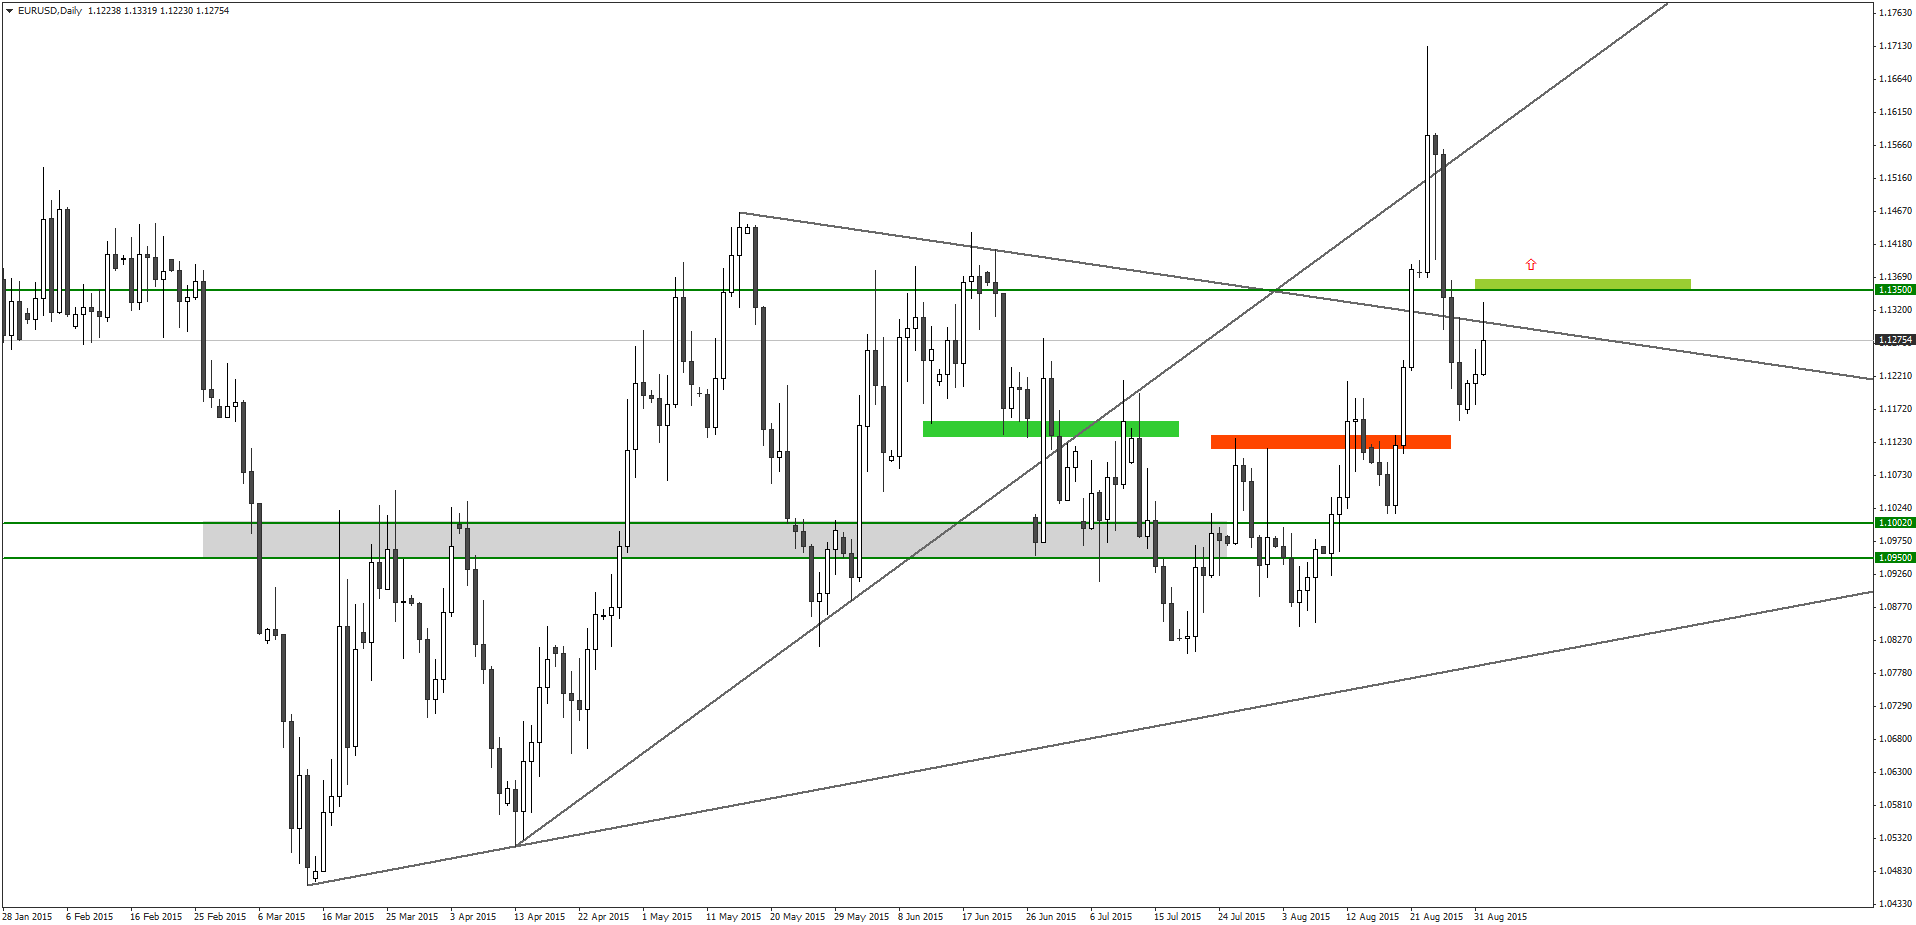 Binary options strategy for the eur/usd